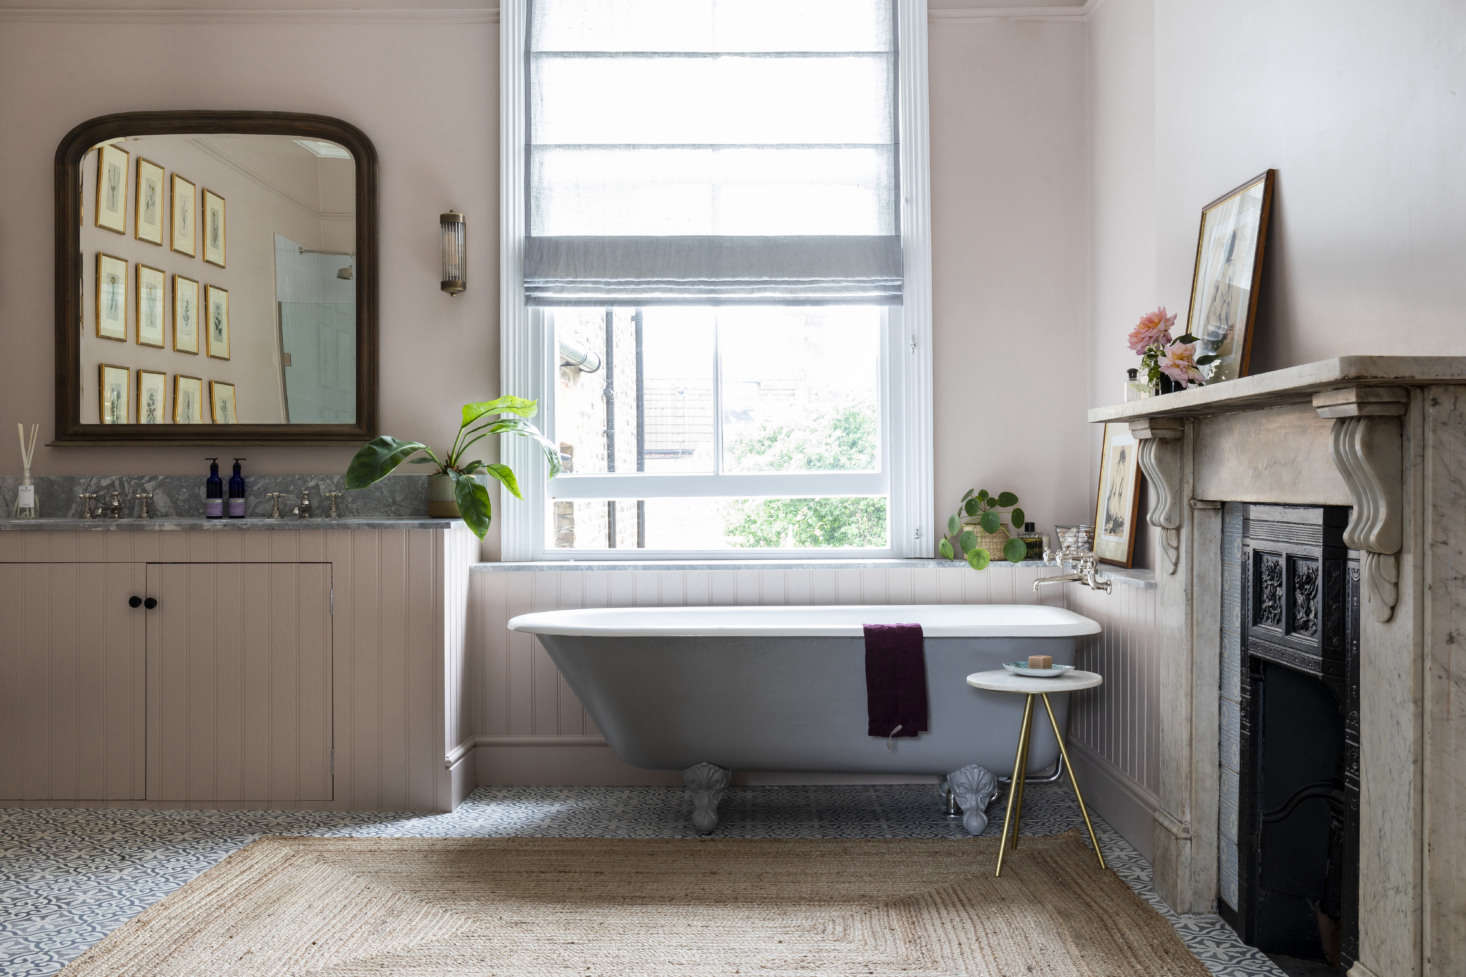 Master bathroom in this Victorian family home, London